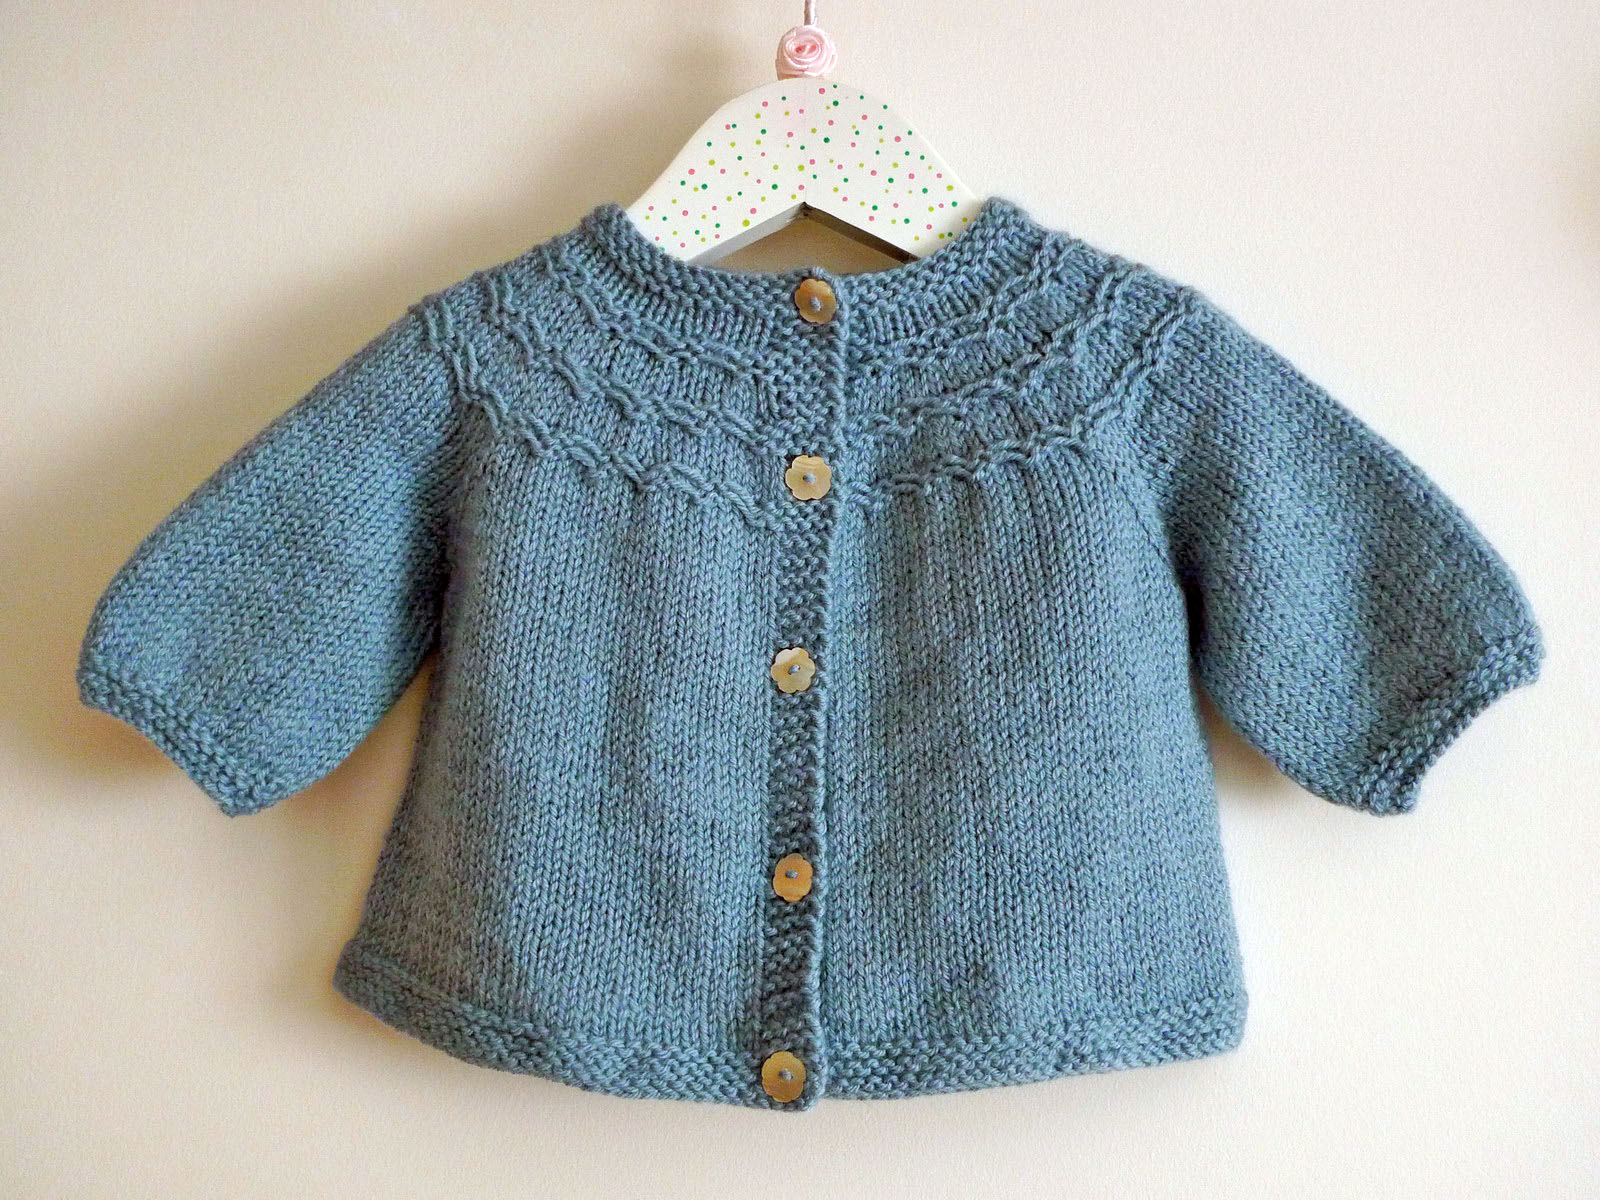 Chocolate à chuva: smocked baby cardi + cabled booties